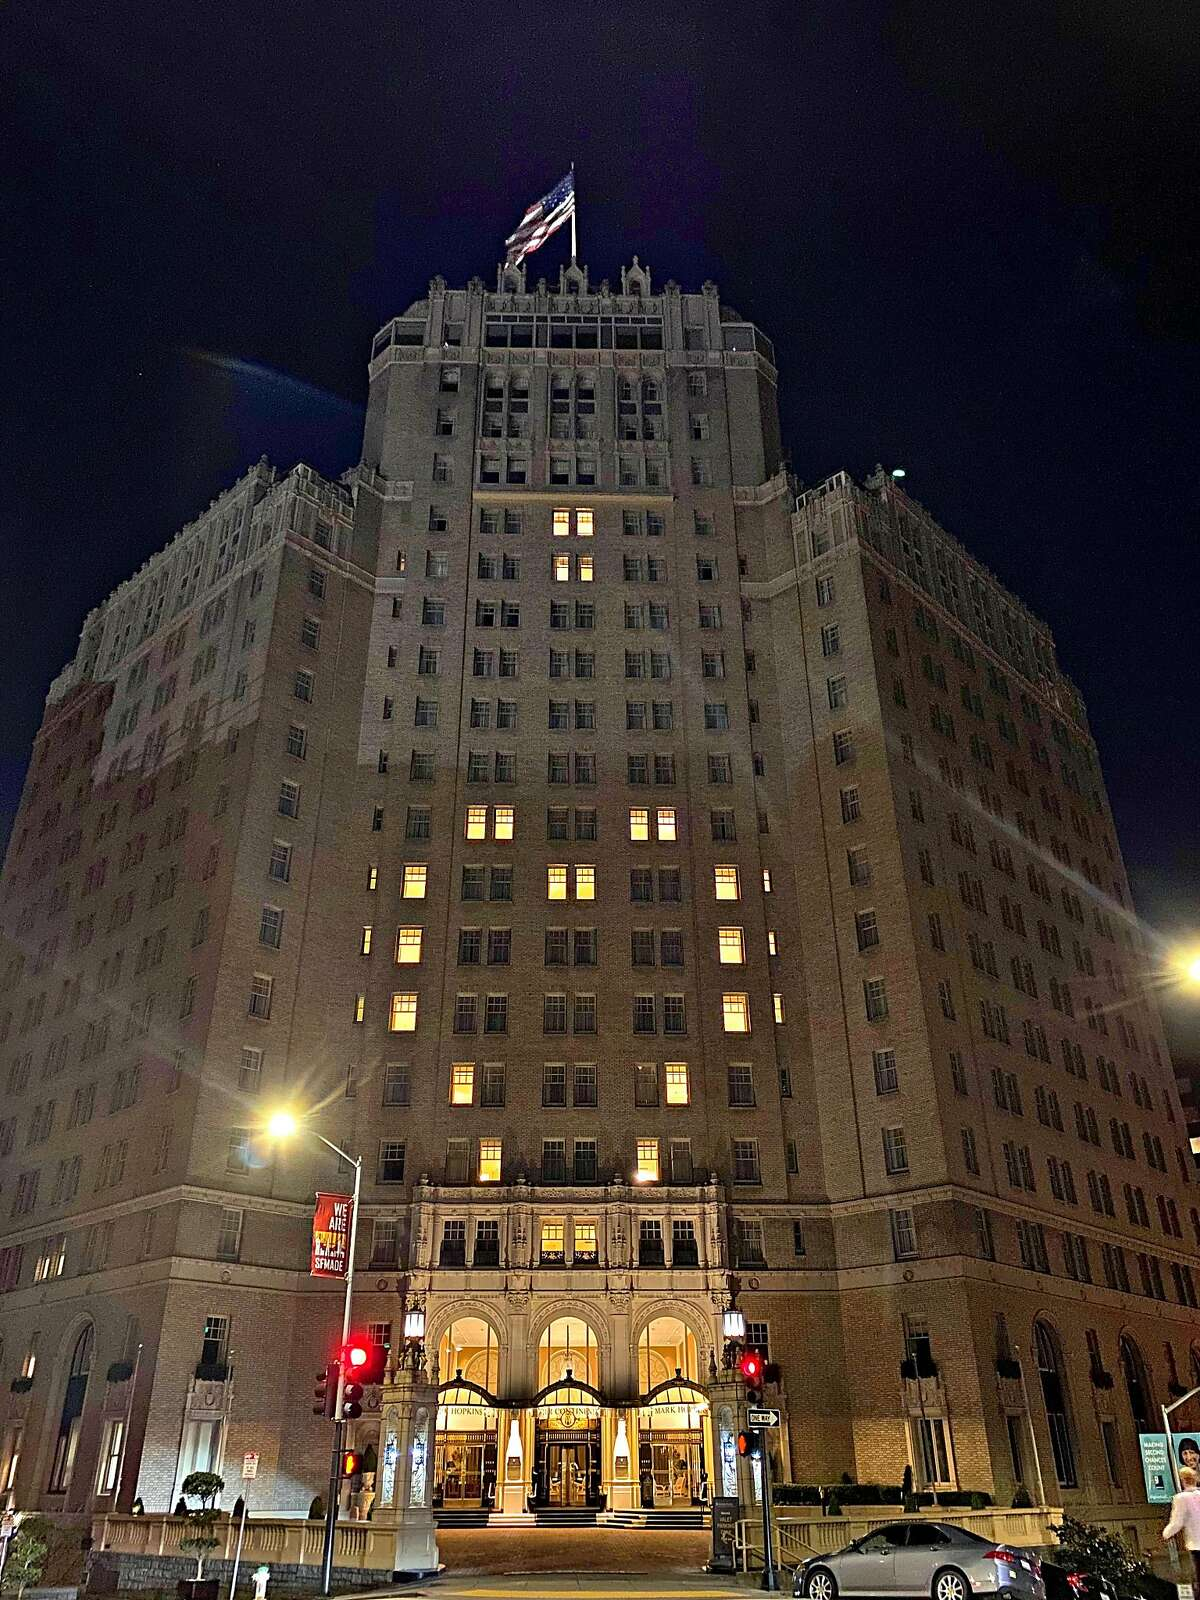 The Mark Hopkins hotel in San Francisco is using its lights to display a heart over Nob Hill.